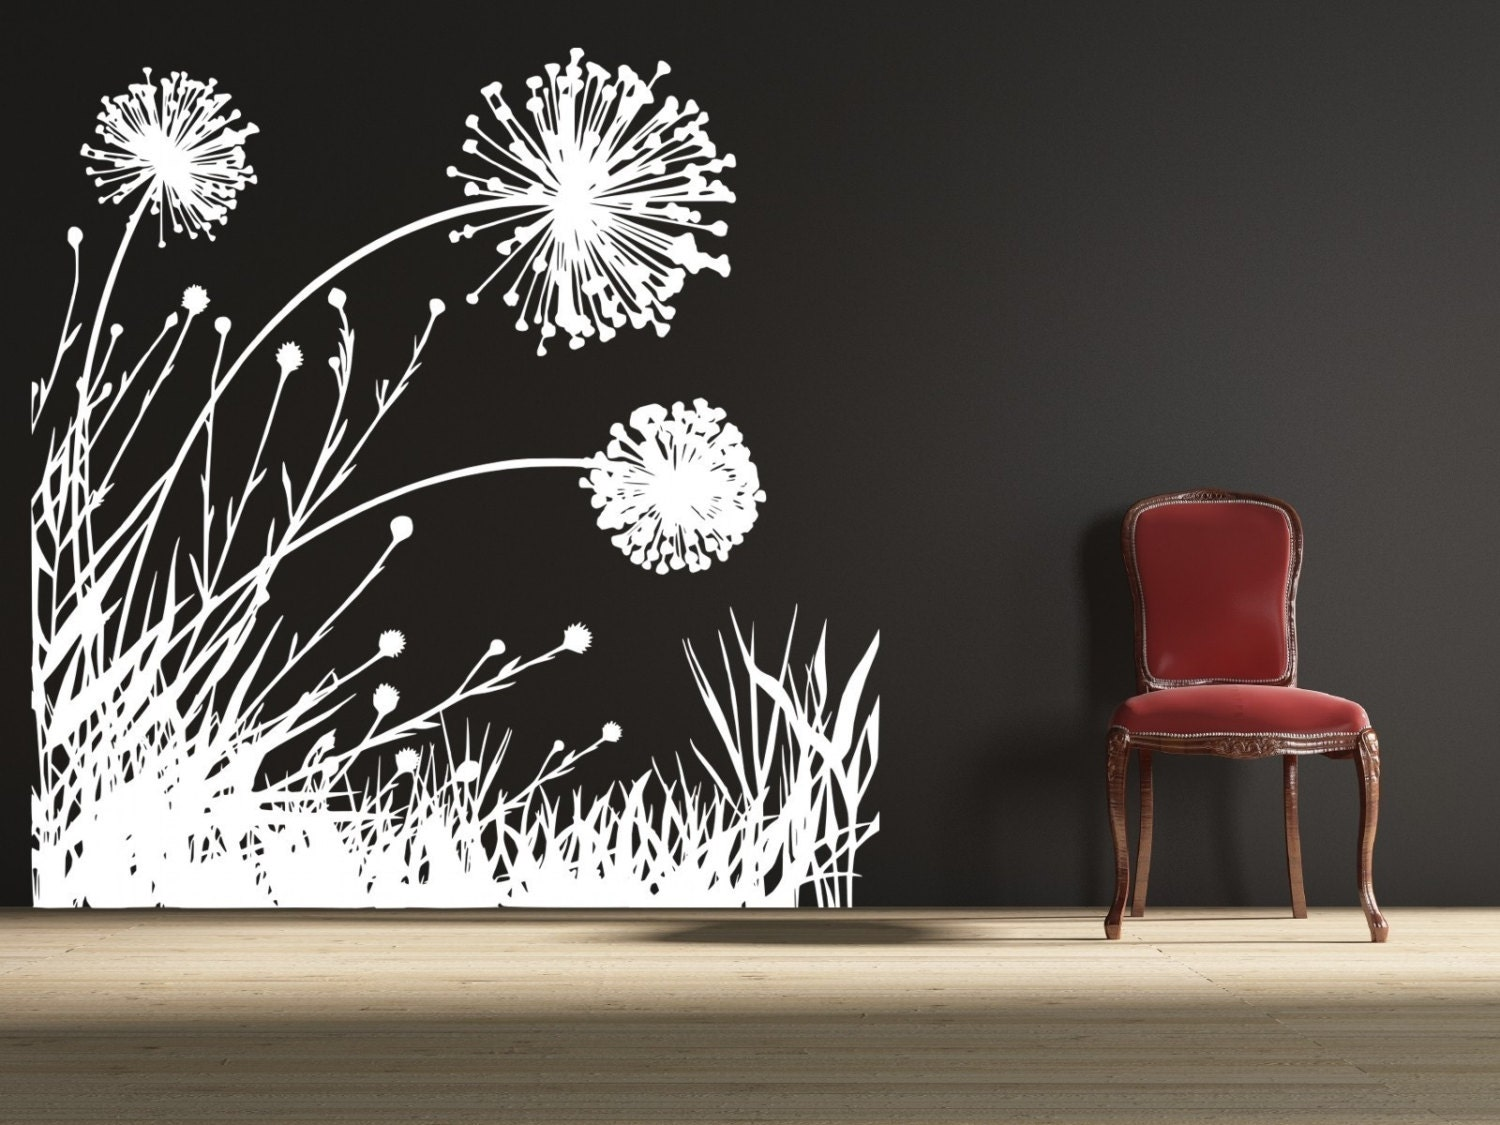 Dandelion wall decal floral wall decal dandelion a154 zoom amipublicfo Images